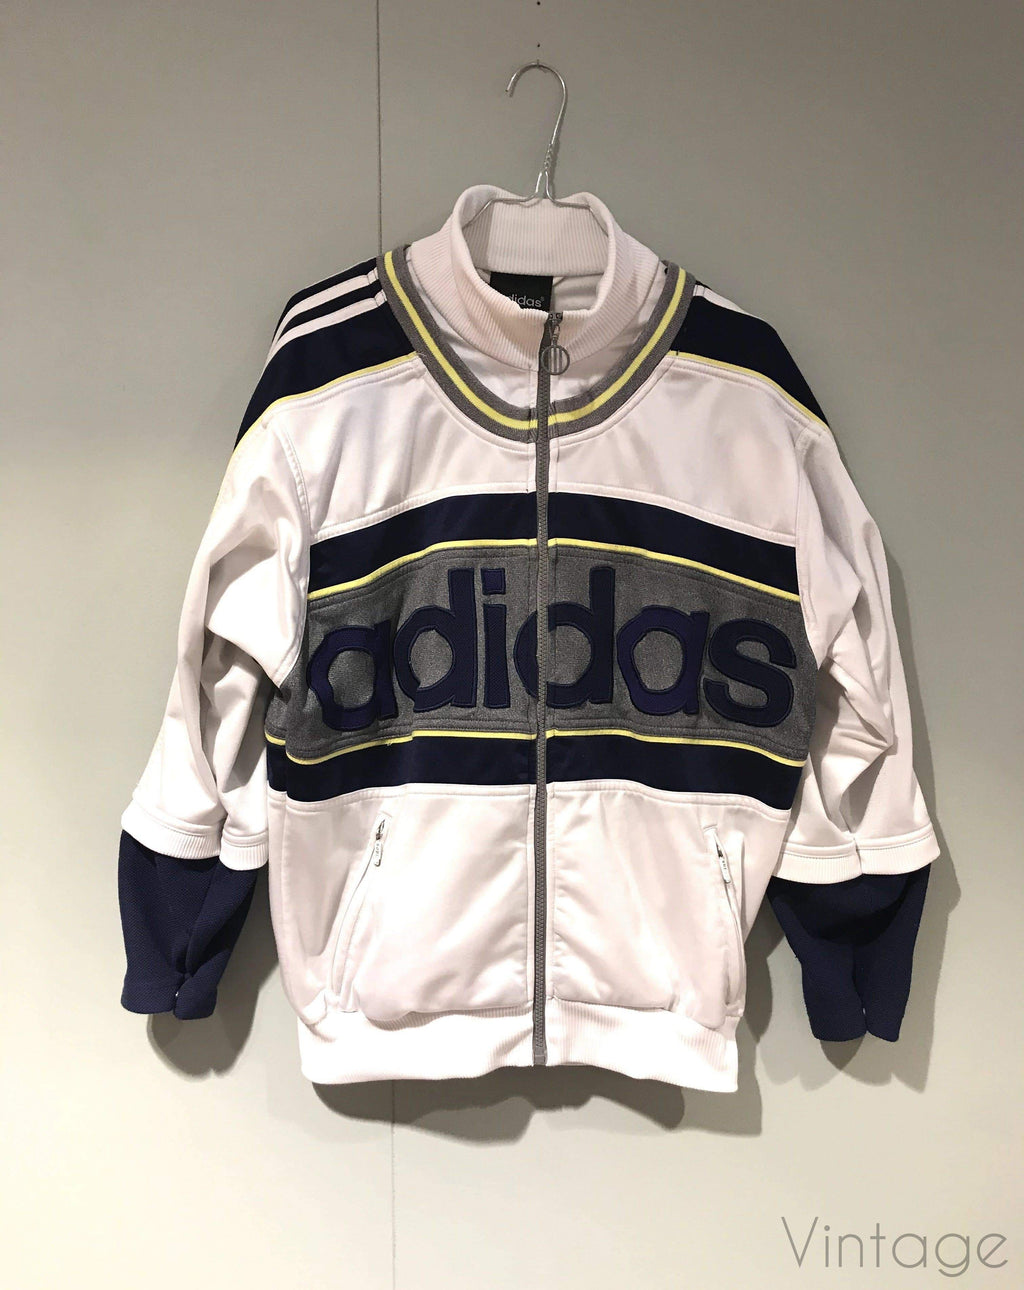 Sporty Adidasjakke, størrelse ca M Second Chance Second chance